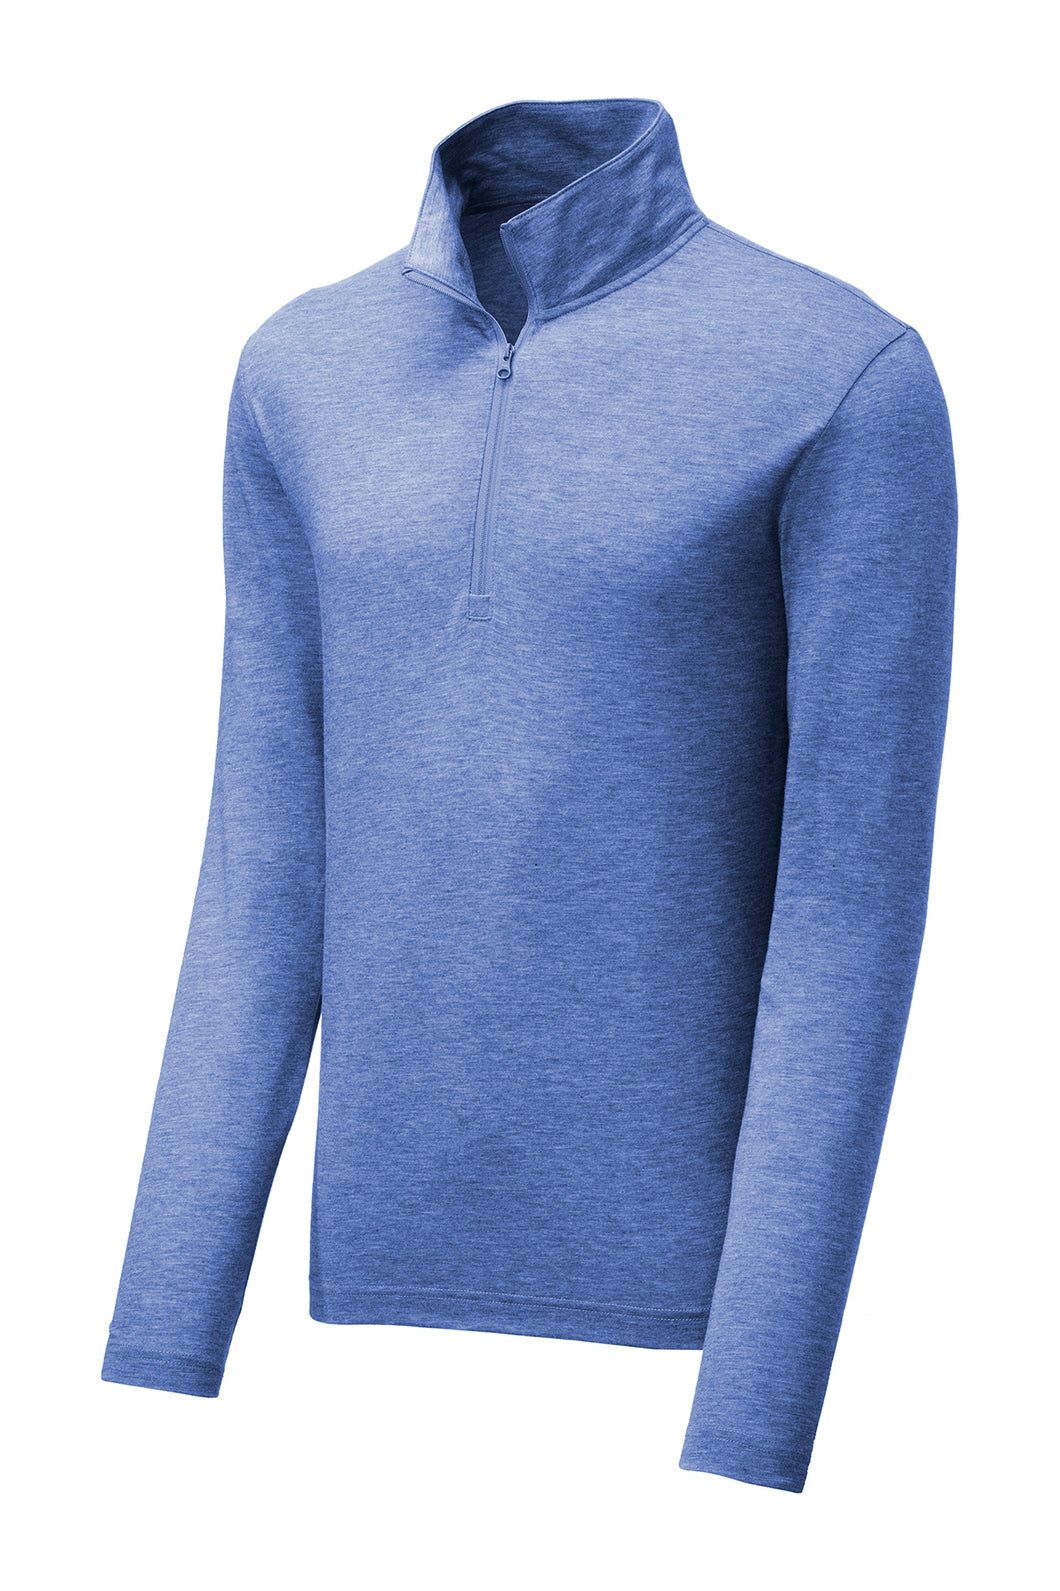 Fusion Performance Quarter-Zip - Royal